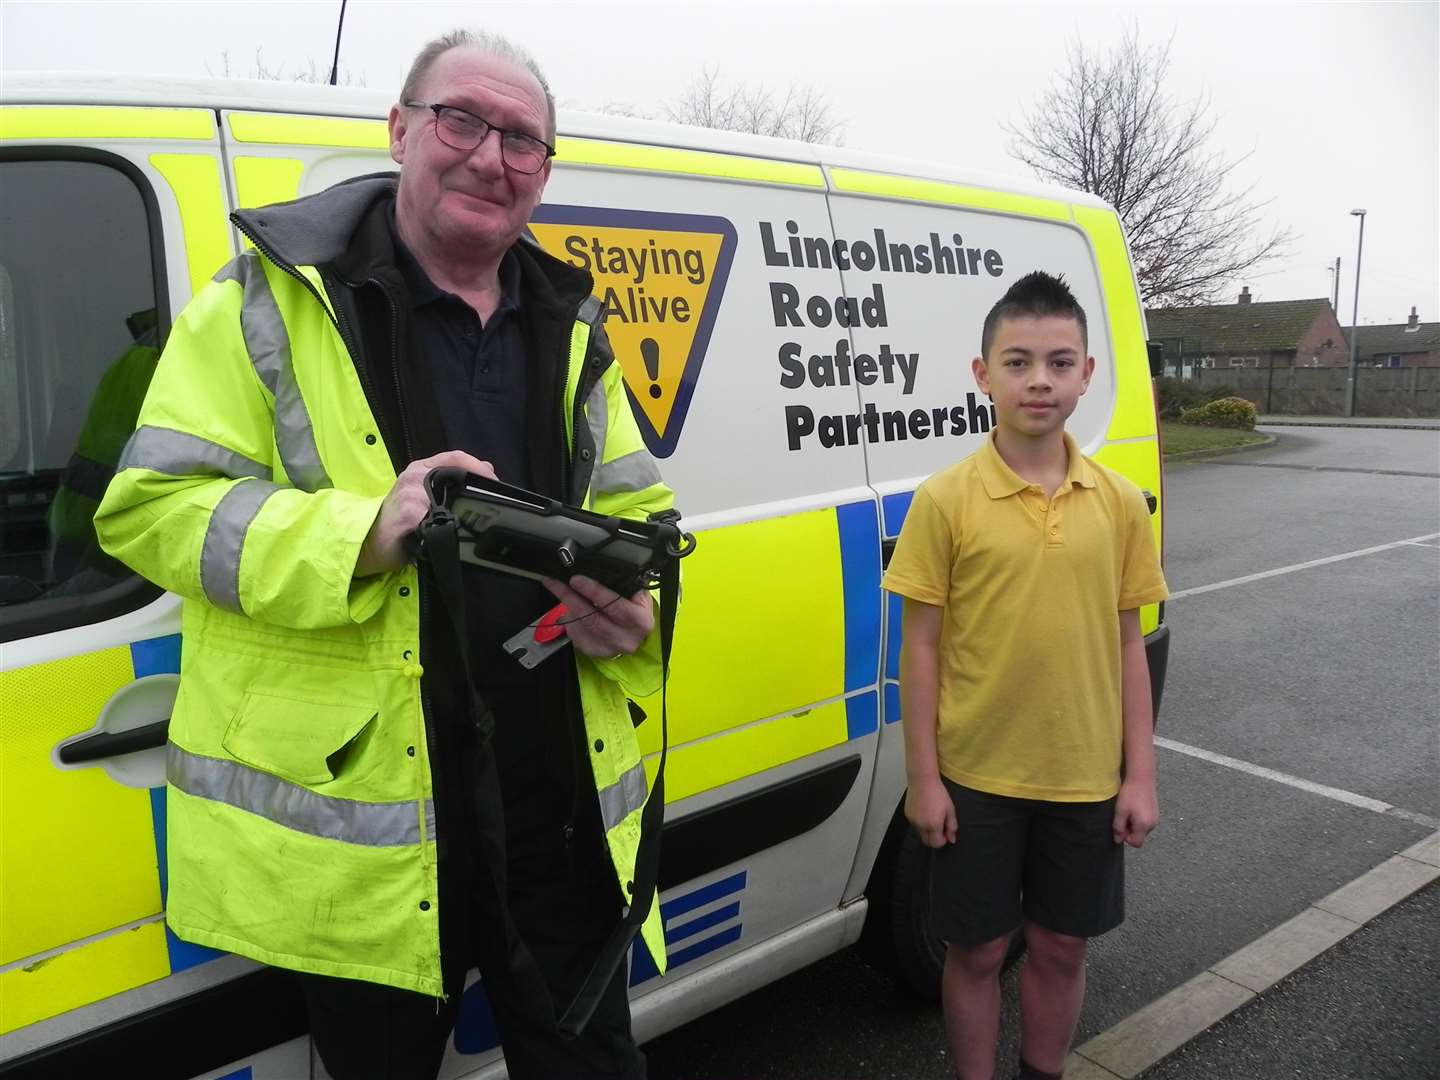 Lincolnshire Road Safety Partnership's data collector/analyst John Wise visiting Weston Hills Primary School